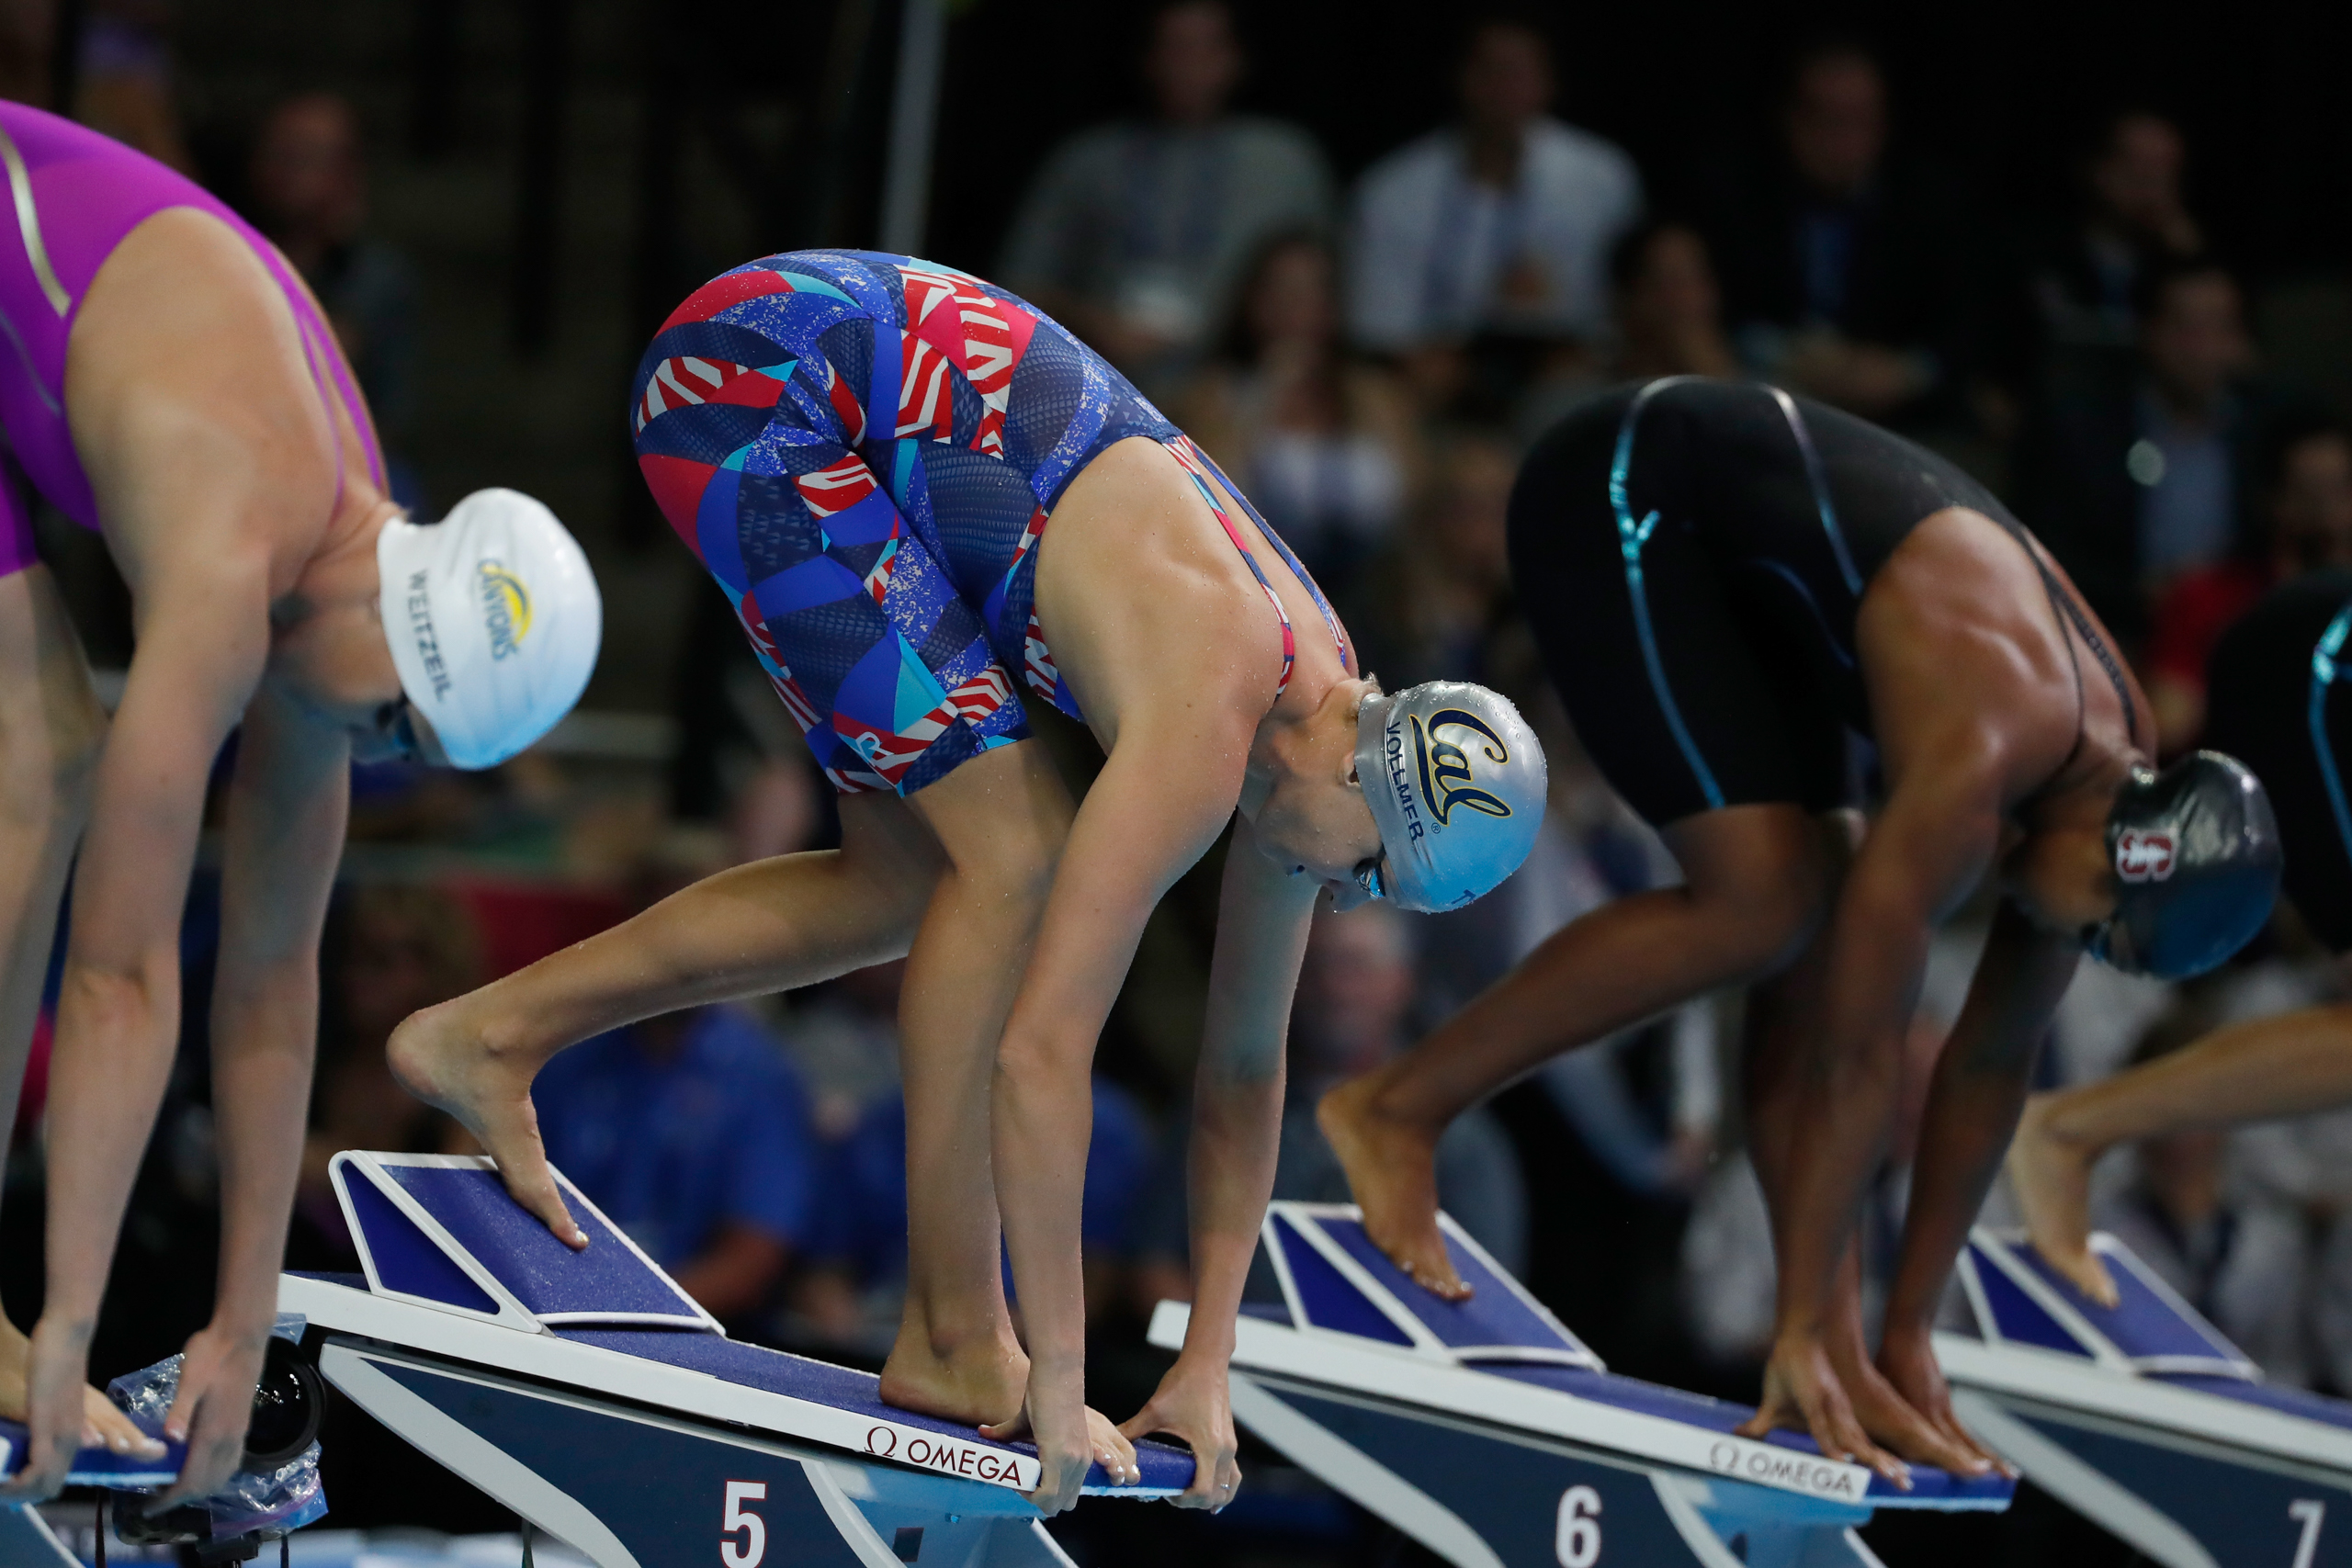 <strong>Dana Vollmer, Swimming, USA</strong>She made the Olympic team just 16 months after giving birth to her son Arlen and looks to defend her 2012 gold in the 100-m butterfly.